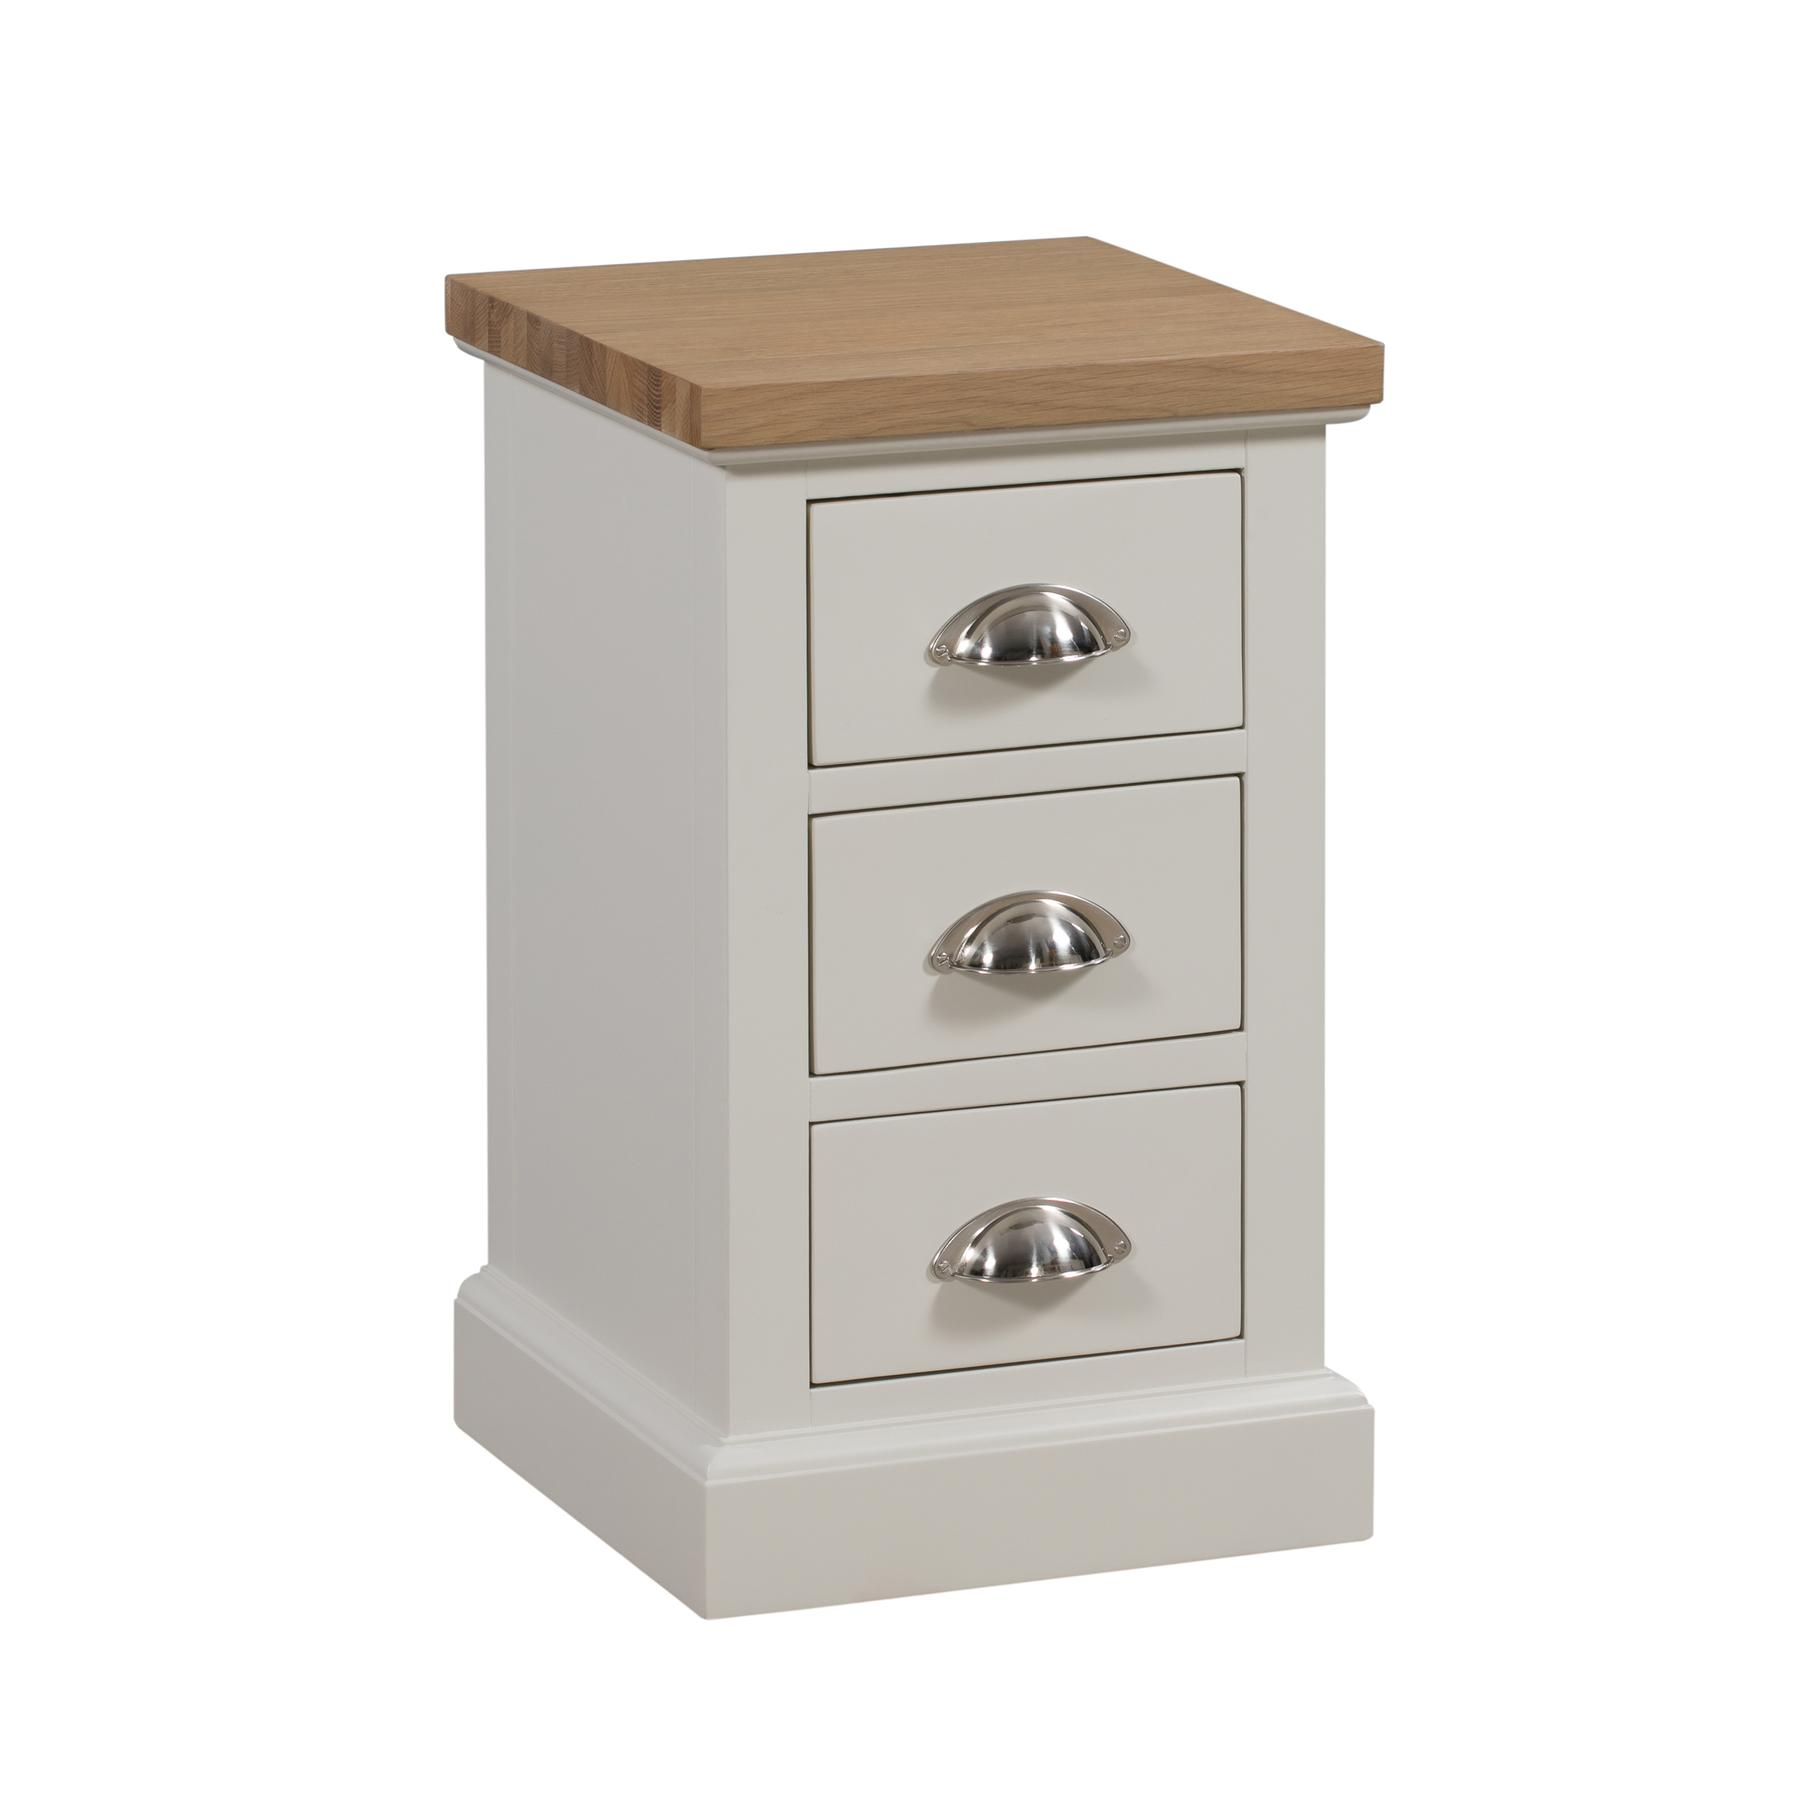 Ripley Oak Collection Three Drawer Bedside